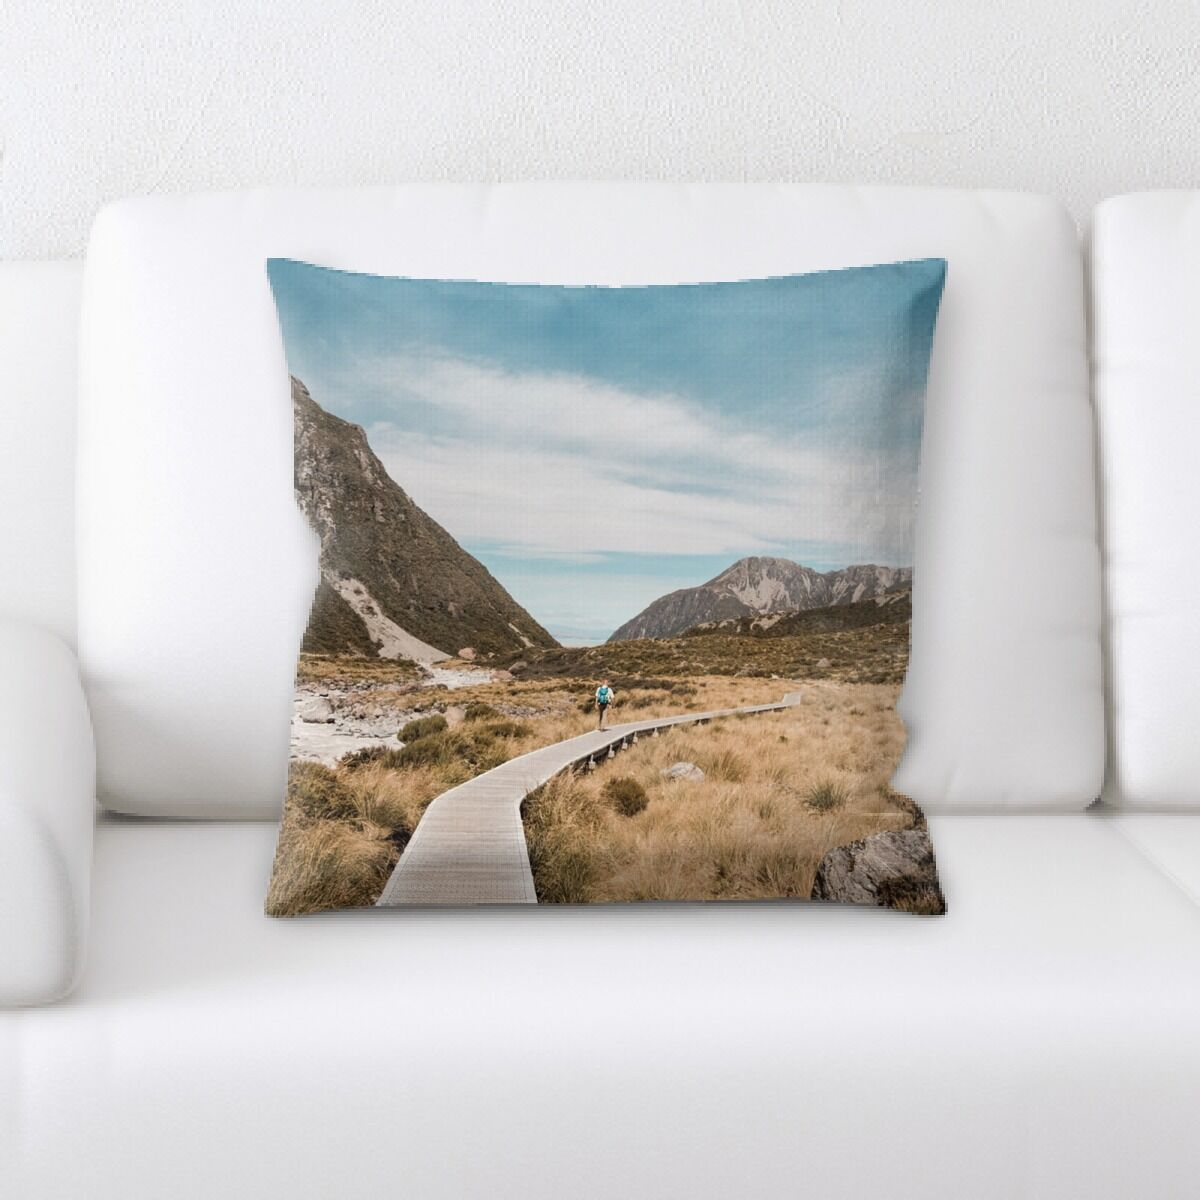 Carrier Mountain and Cliffs (232) Throw Pillow